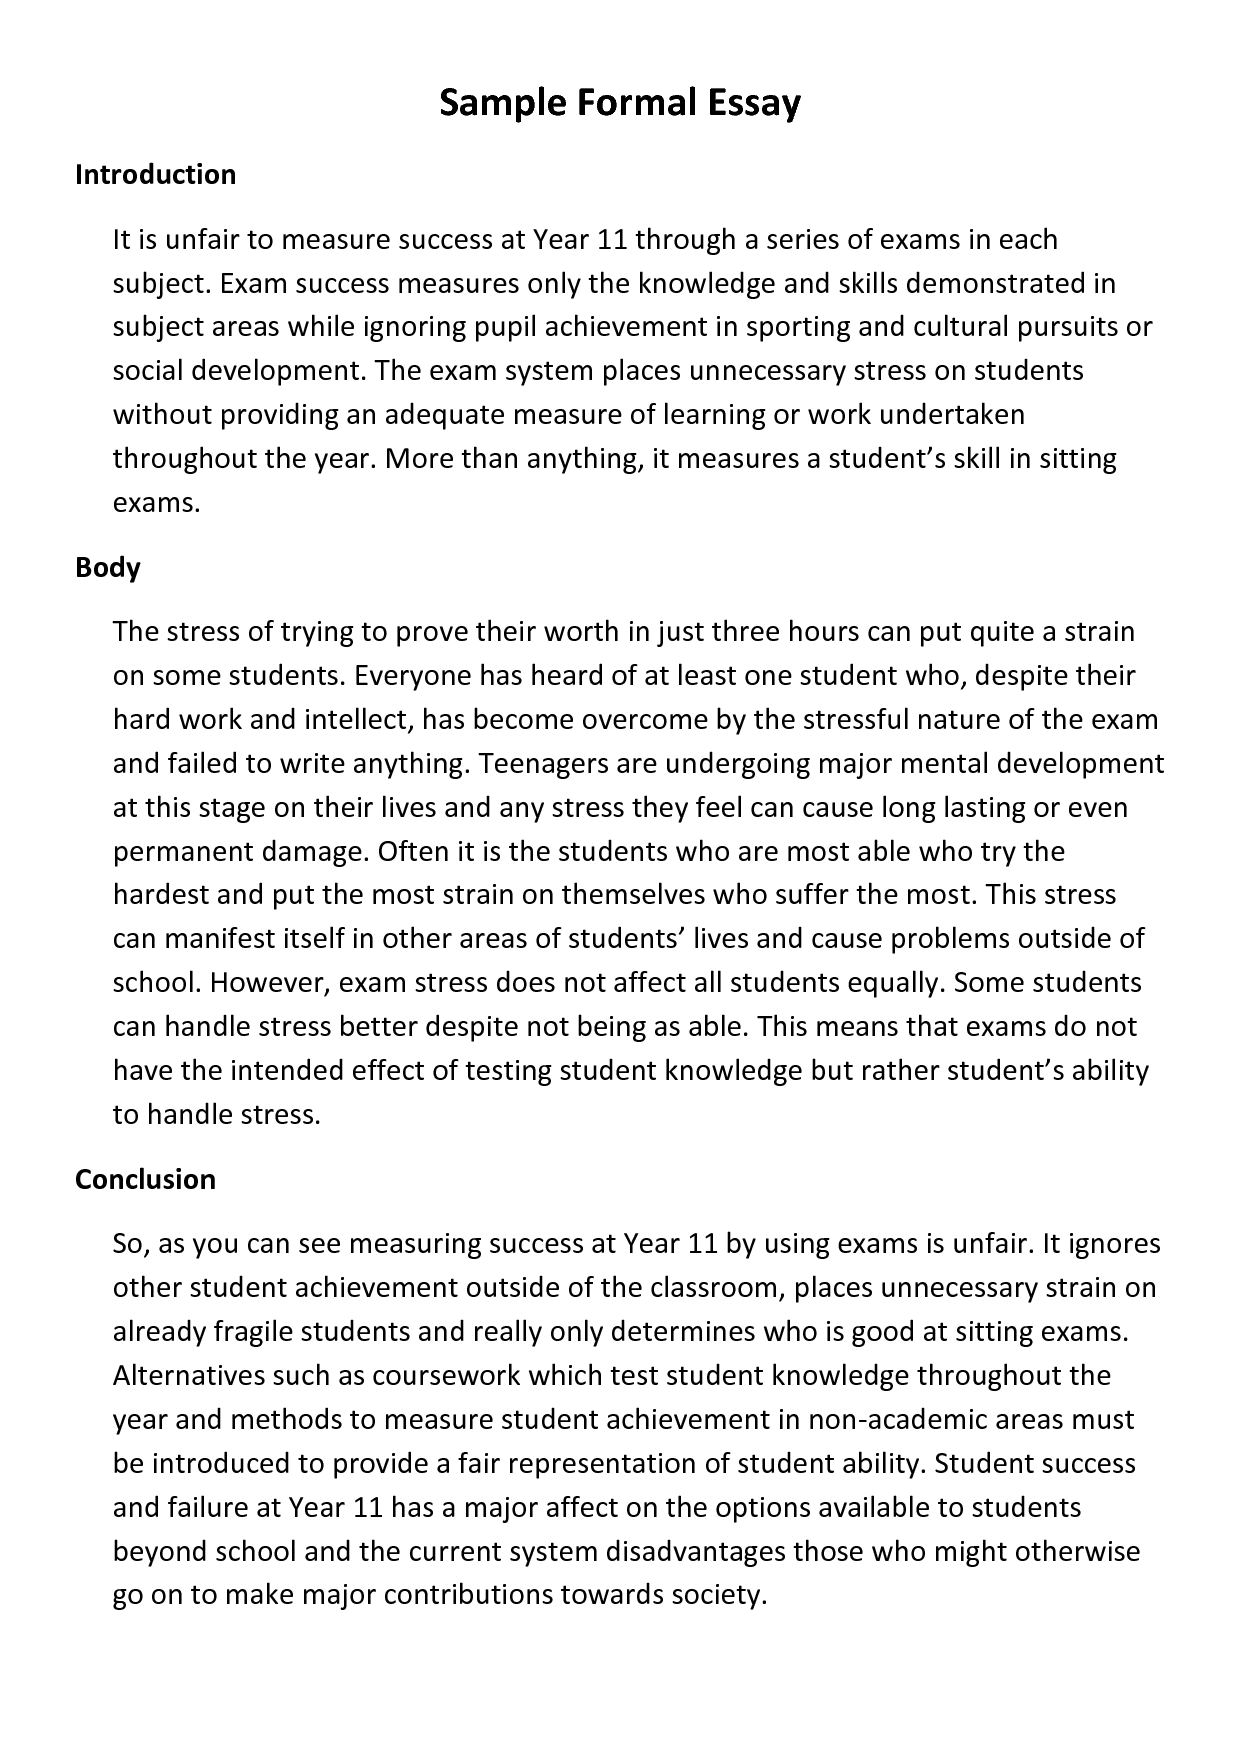 002 Formal Essay Definition Example Format 326903 Best Literary And Language Writing Full